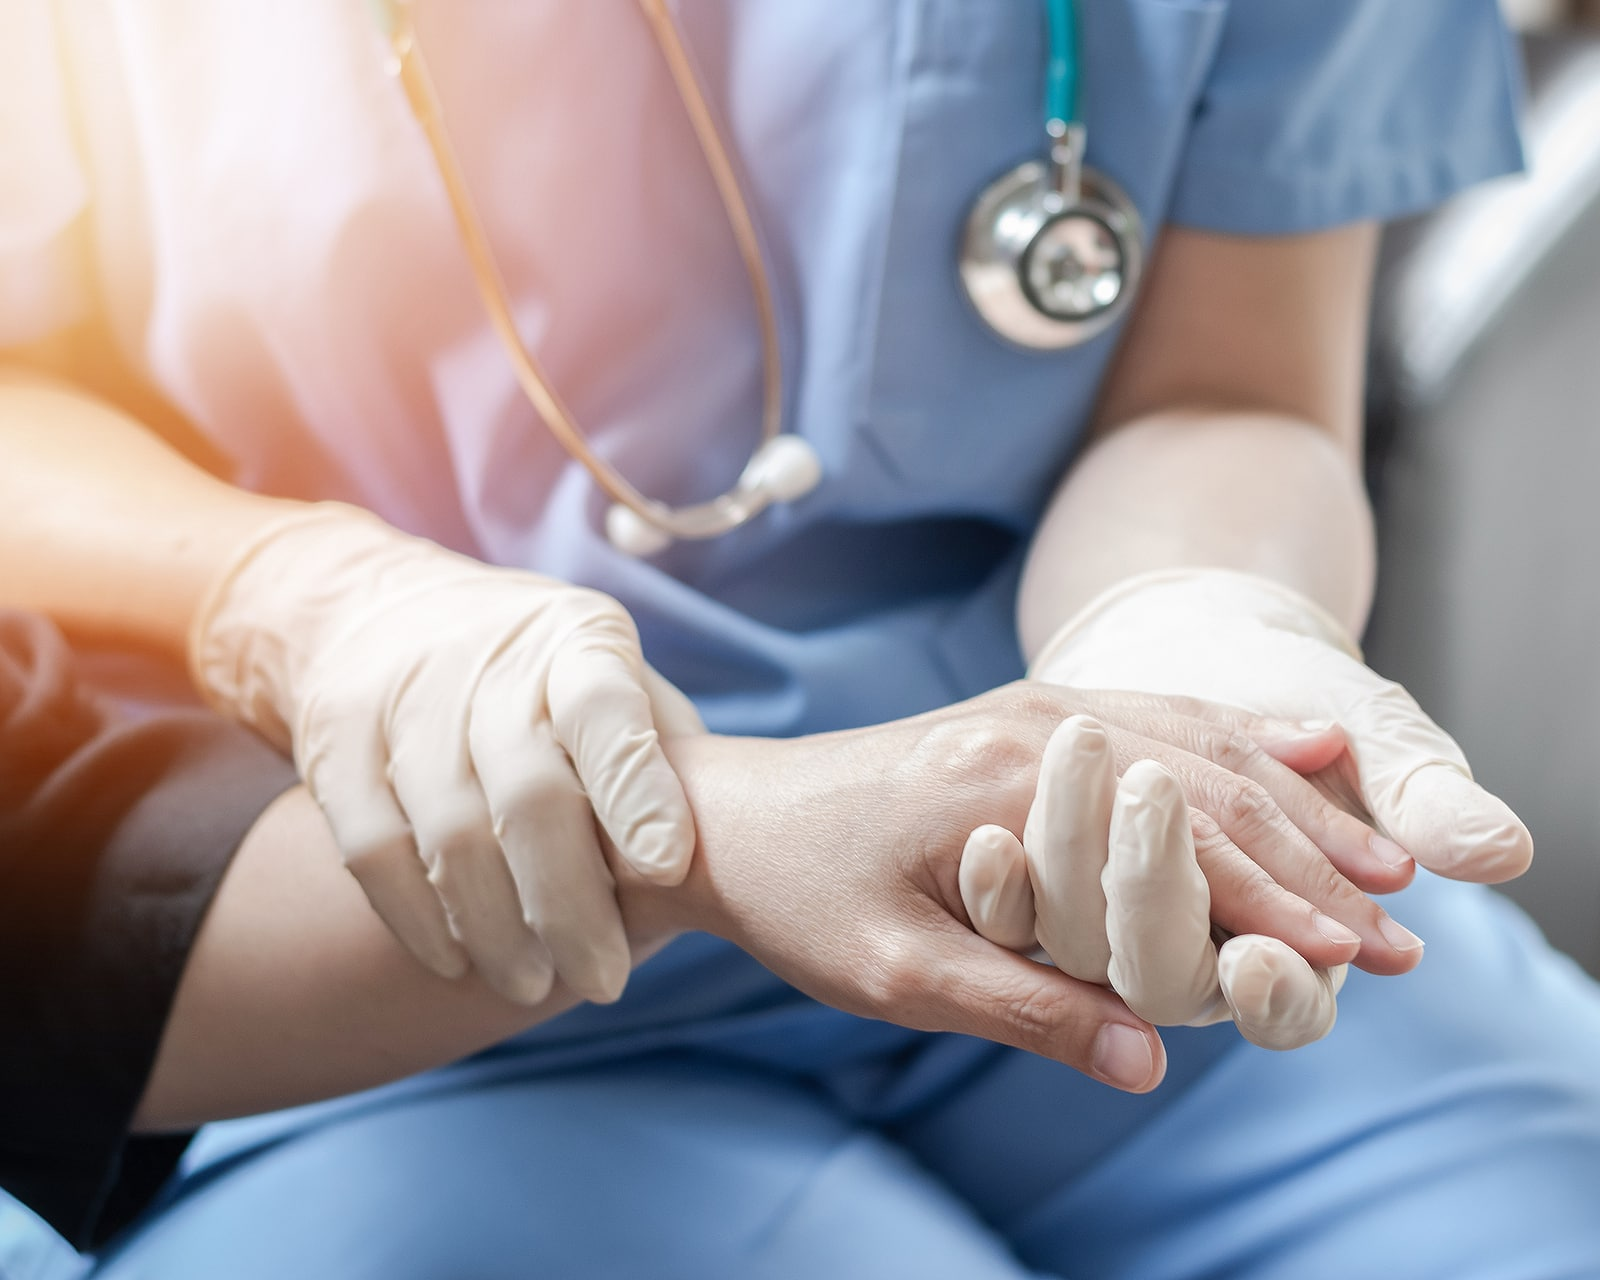 Why anxiety has such an affect on the body- hands of healthcare professional examining hands of a patient